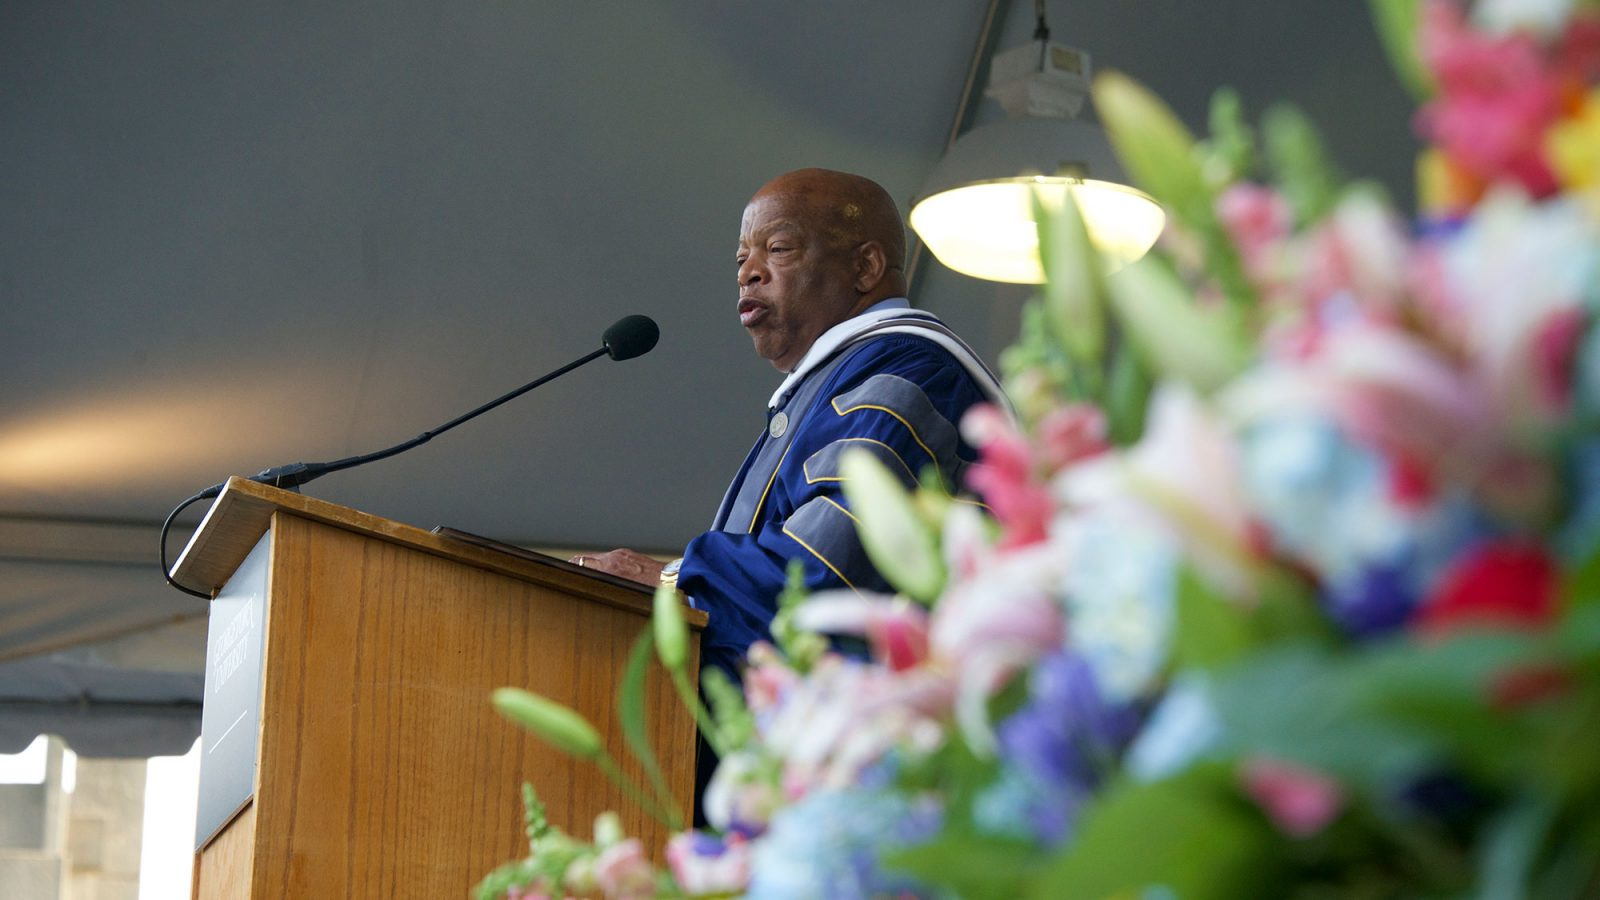 Flowers are in the foreground as John Lewis speaks into the microphone while standing at the lectern in academic regalia.